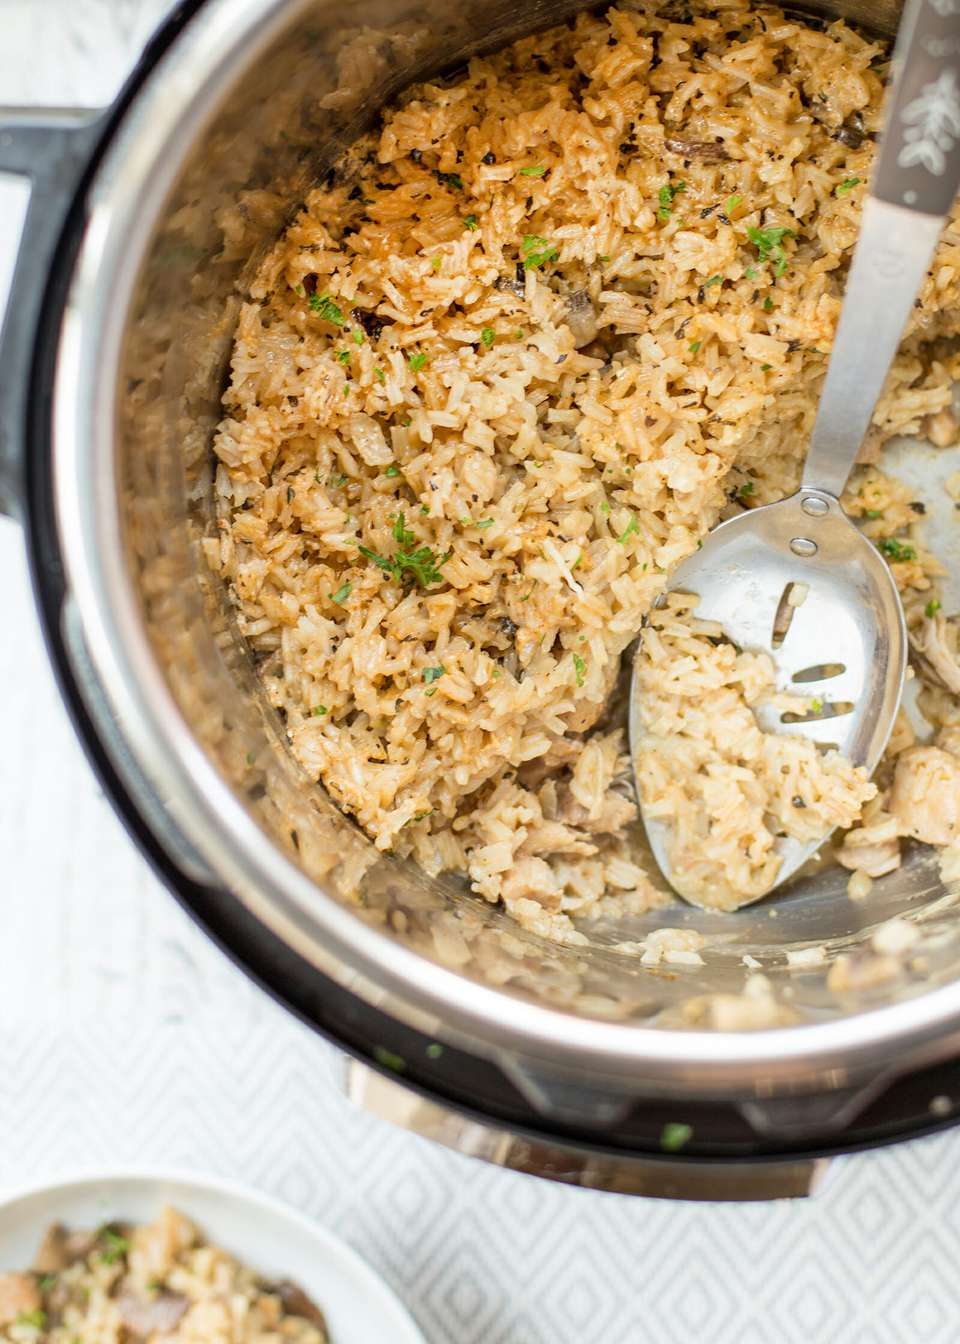 Easy chicken and rice made in an instant pot